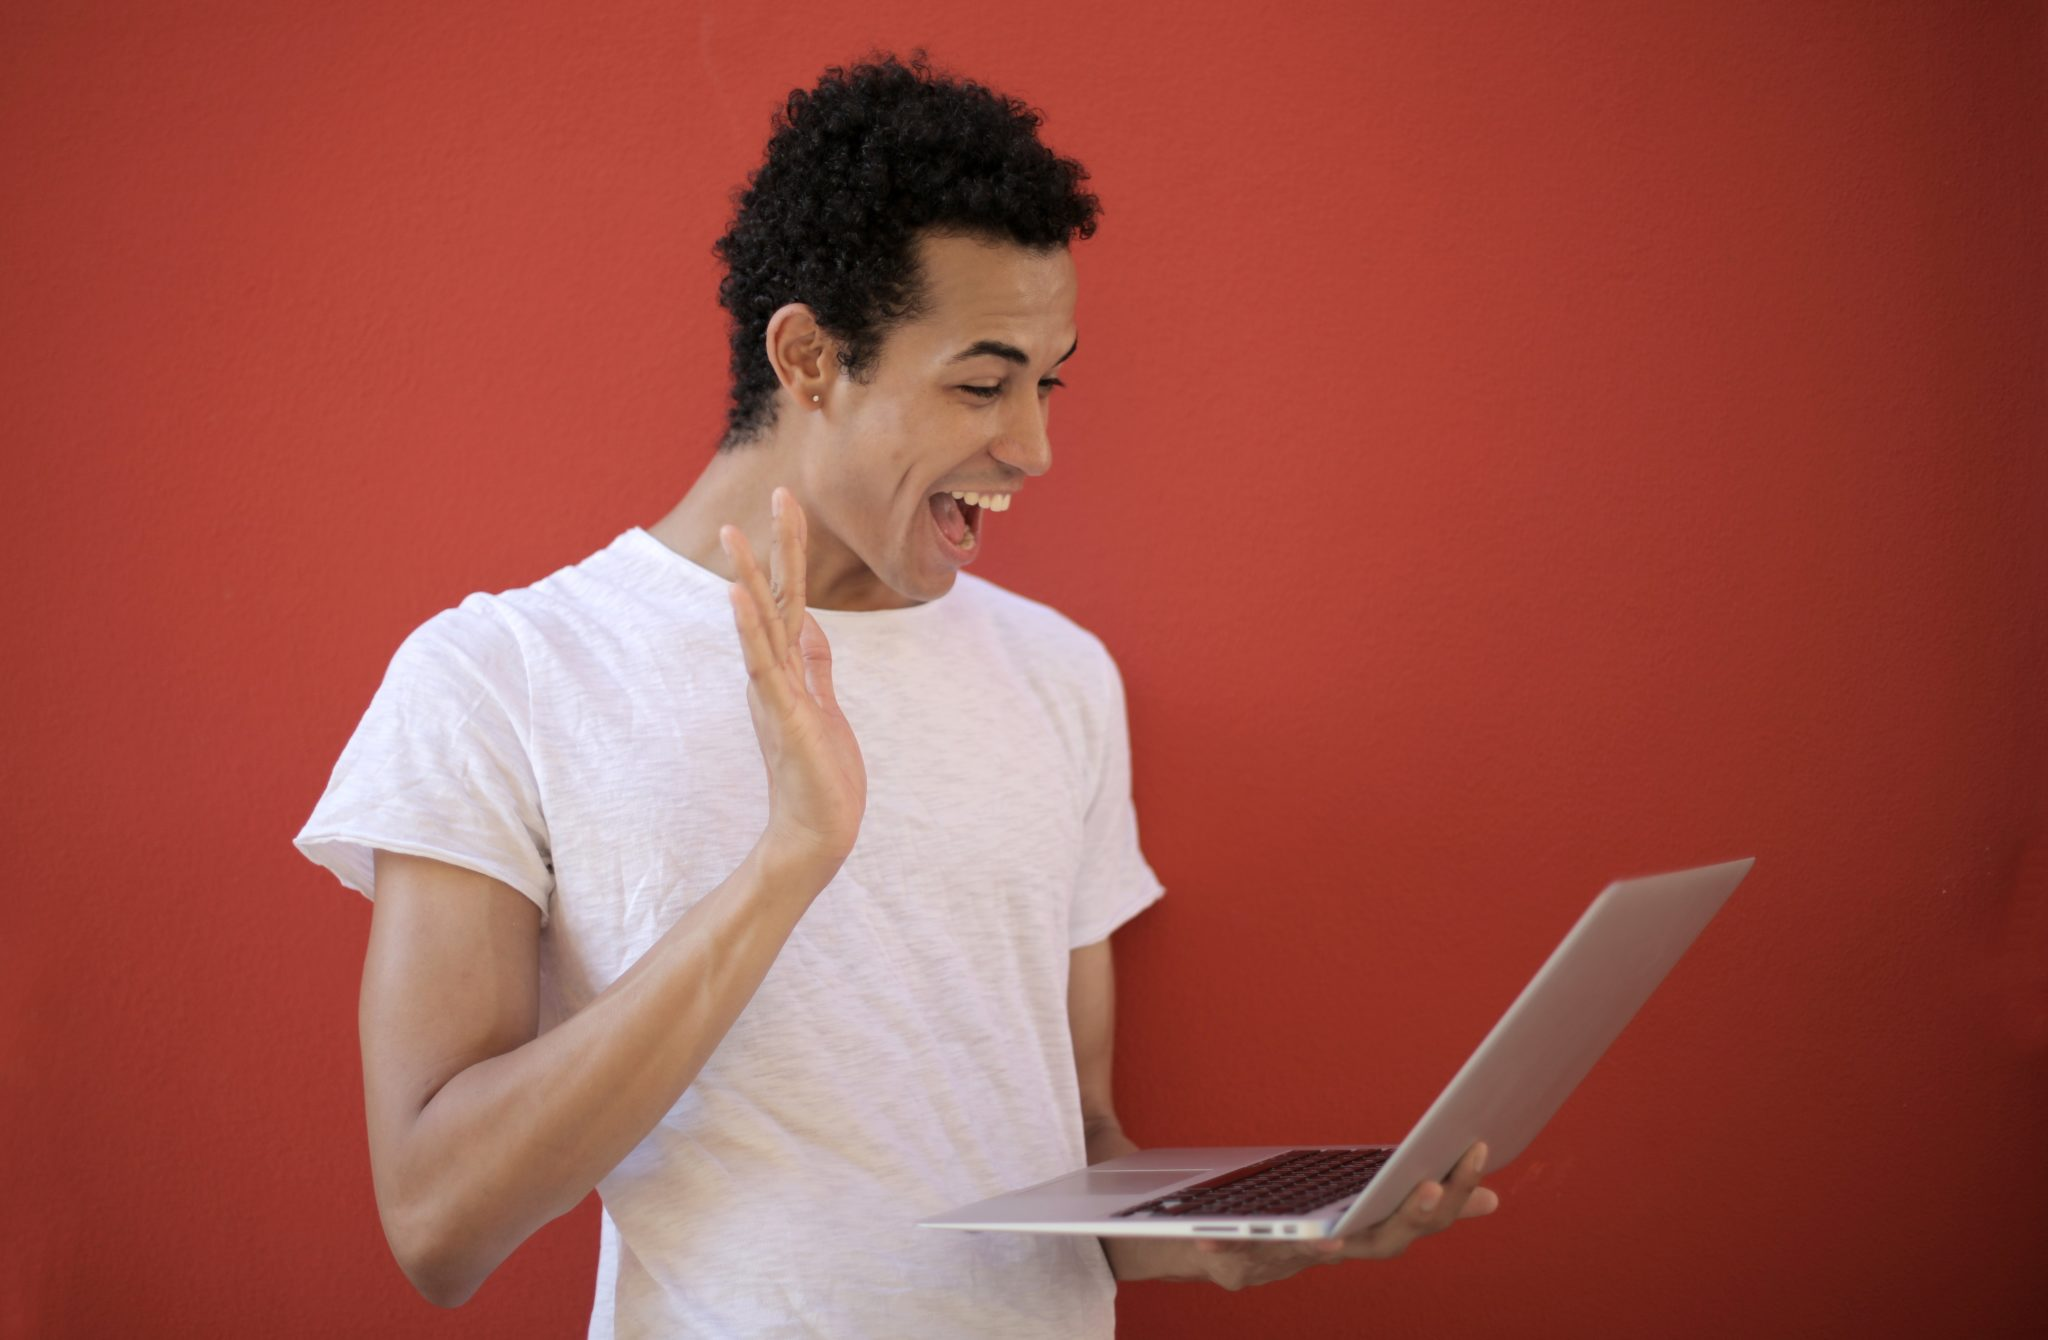 cheerful-man-using-laptop-for-video-call-3799821-2048x1340